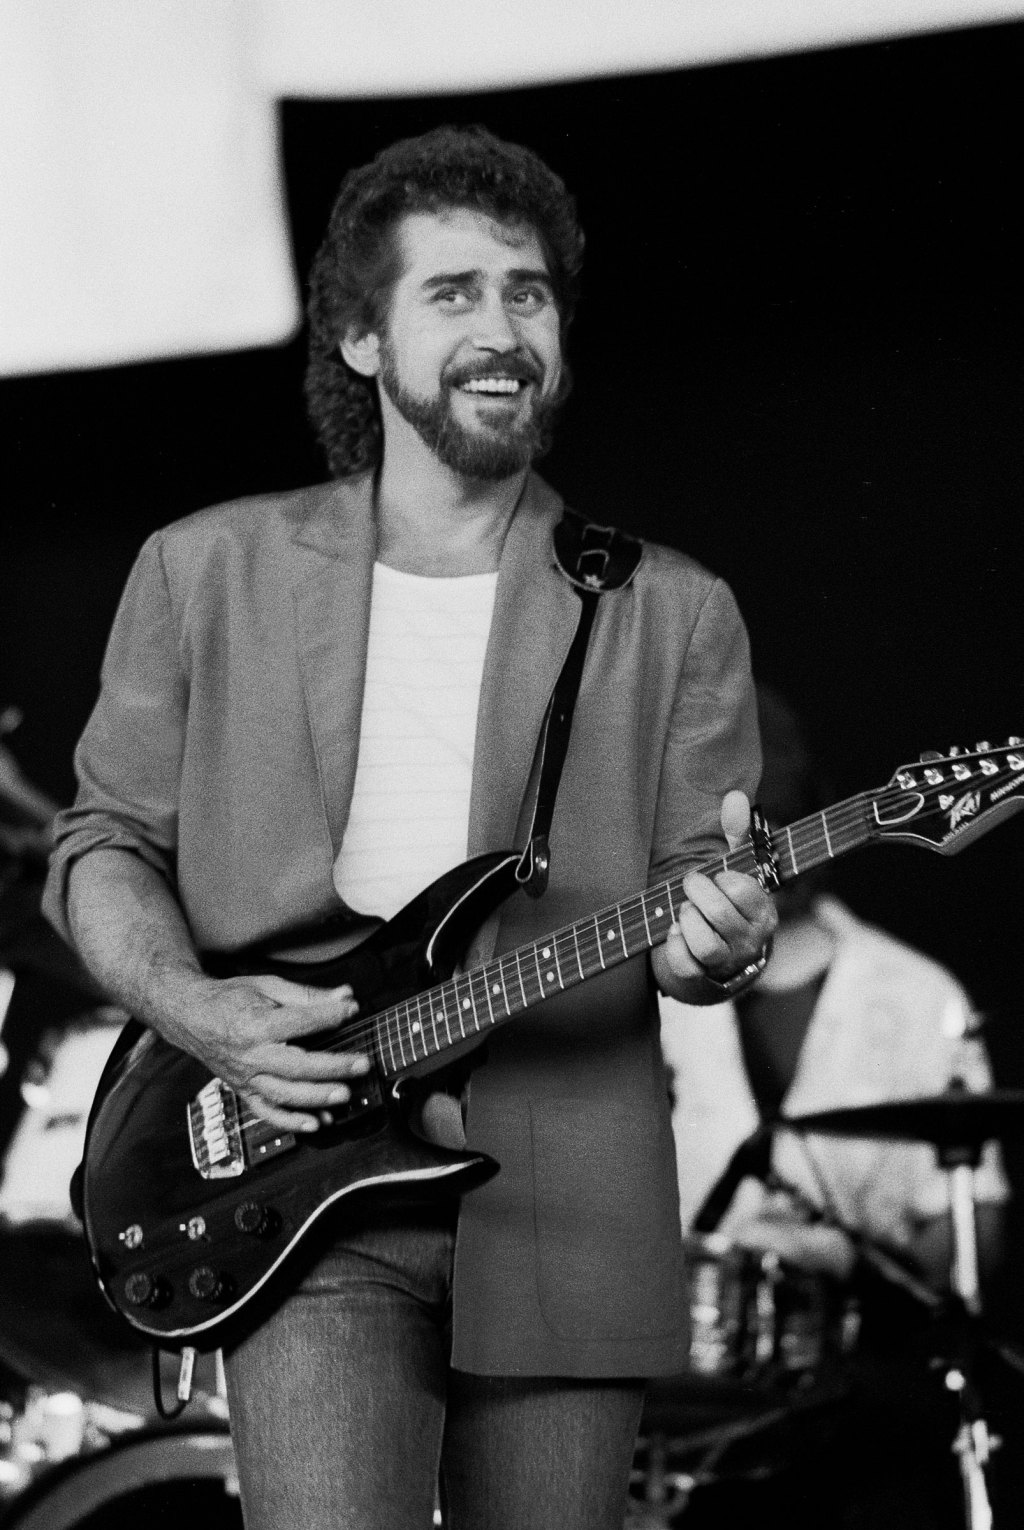 American country music singer Earl Thomas Conley performs at the Poplar Creek Music Theater in Hoffman Estates, Illinois, May 26, 1985.